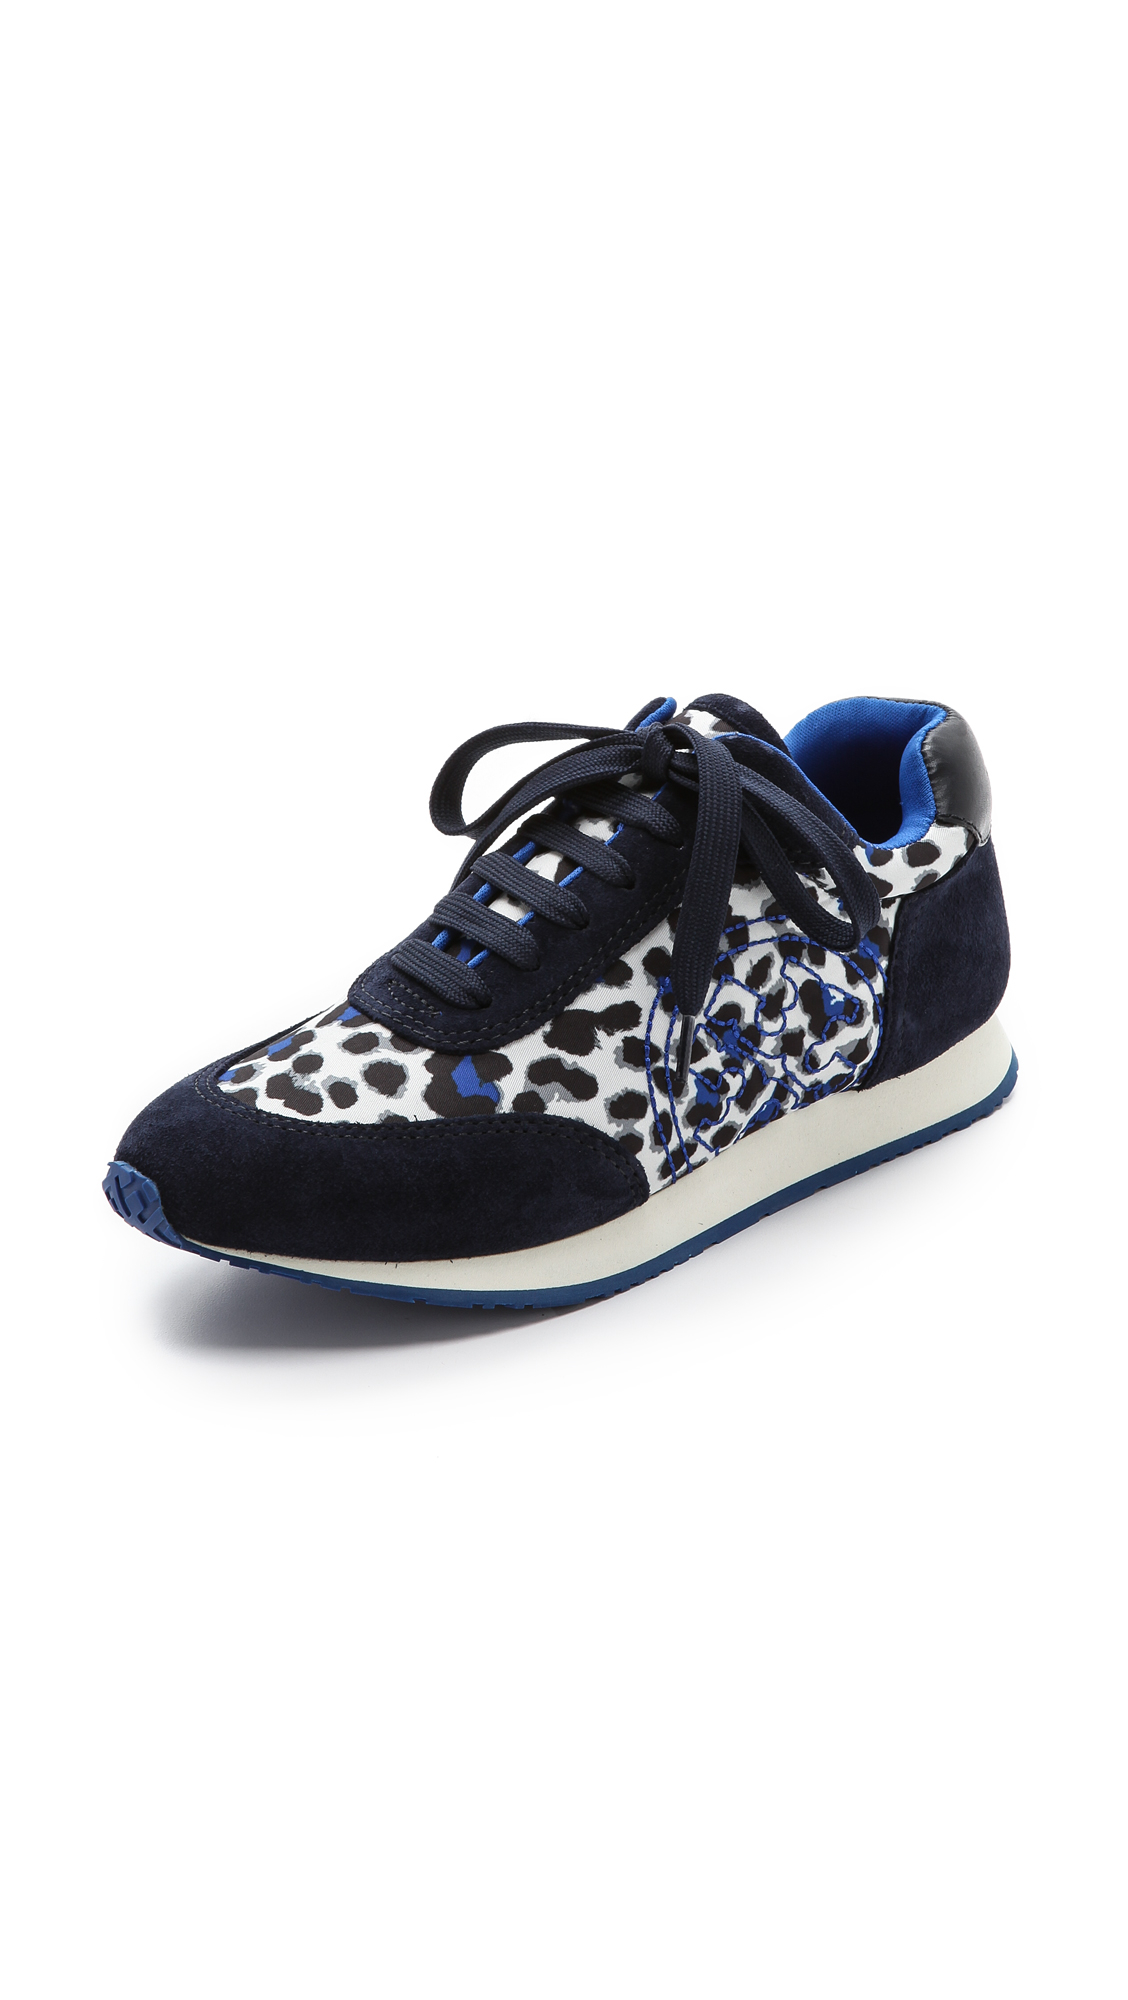 tory burch 39 delancy 39 animal print suede sneakers in blue lyst. Black Bedroom Furniture Sets. Home Design Ideas